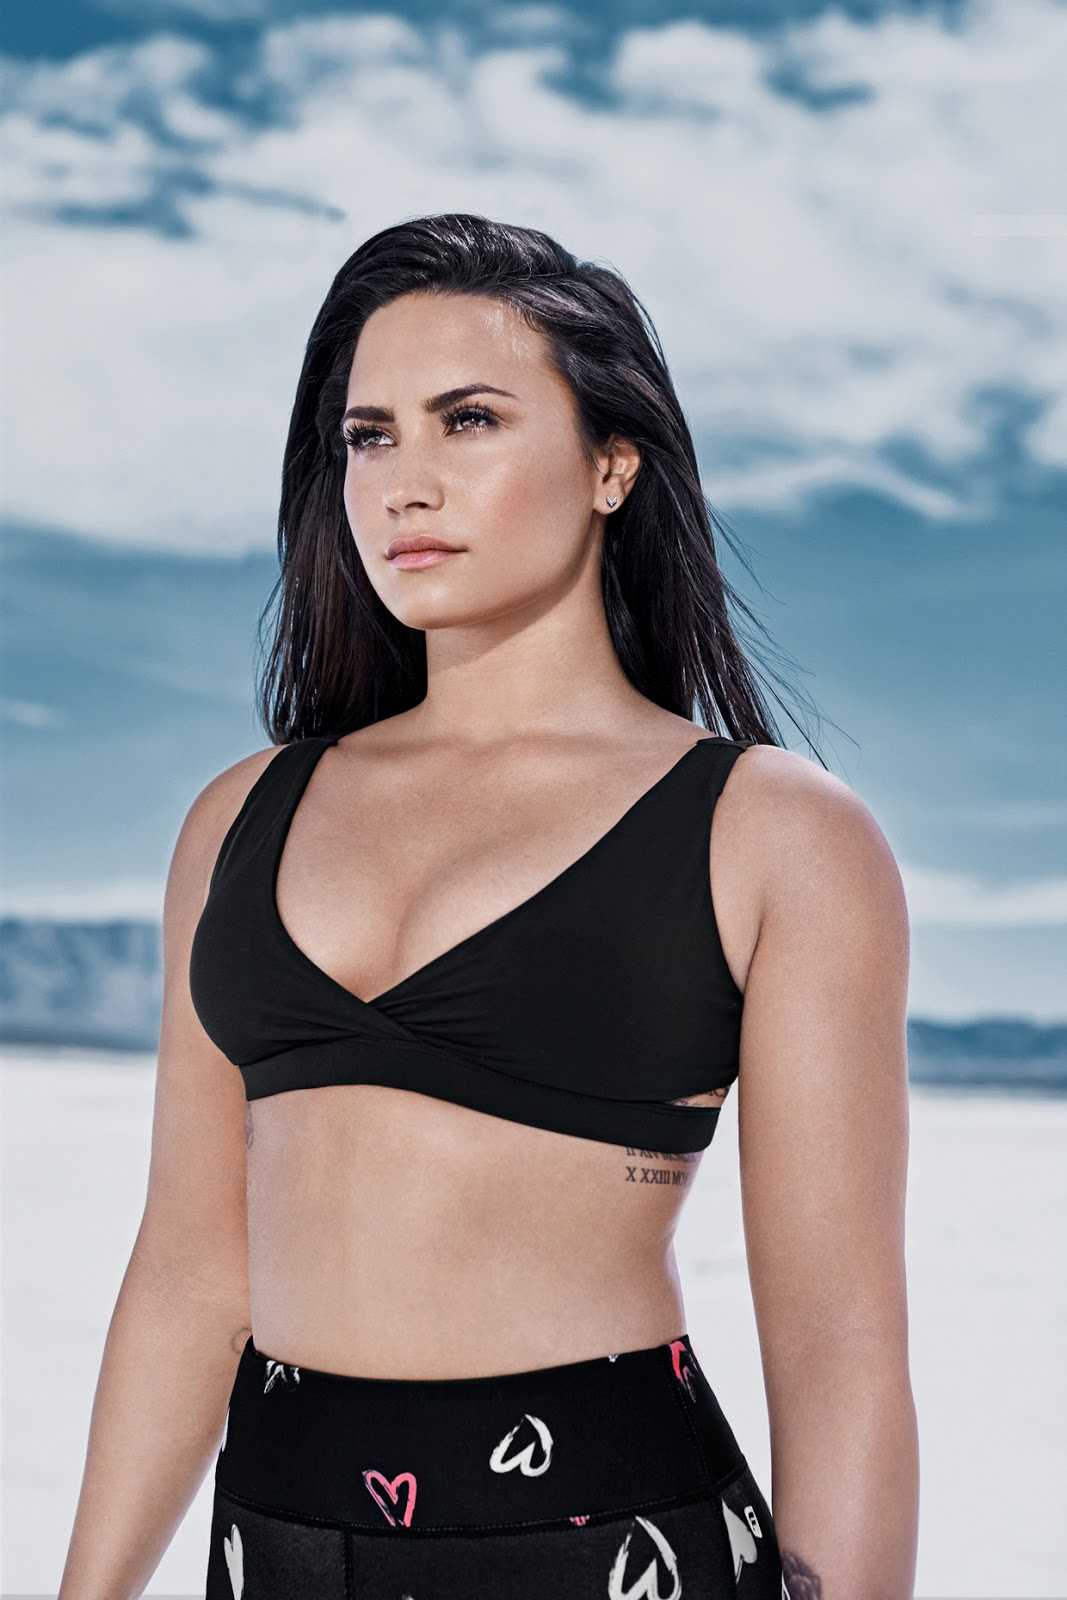 See Here Demi Lovato Latest 2018 Full HD Wallpaper High Quality Desktop And Laptop Backgrounds Photos Images Pictures Pics Free Download For All